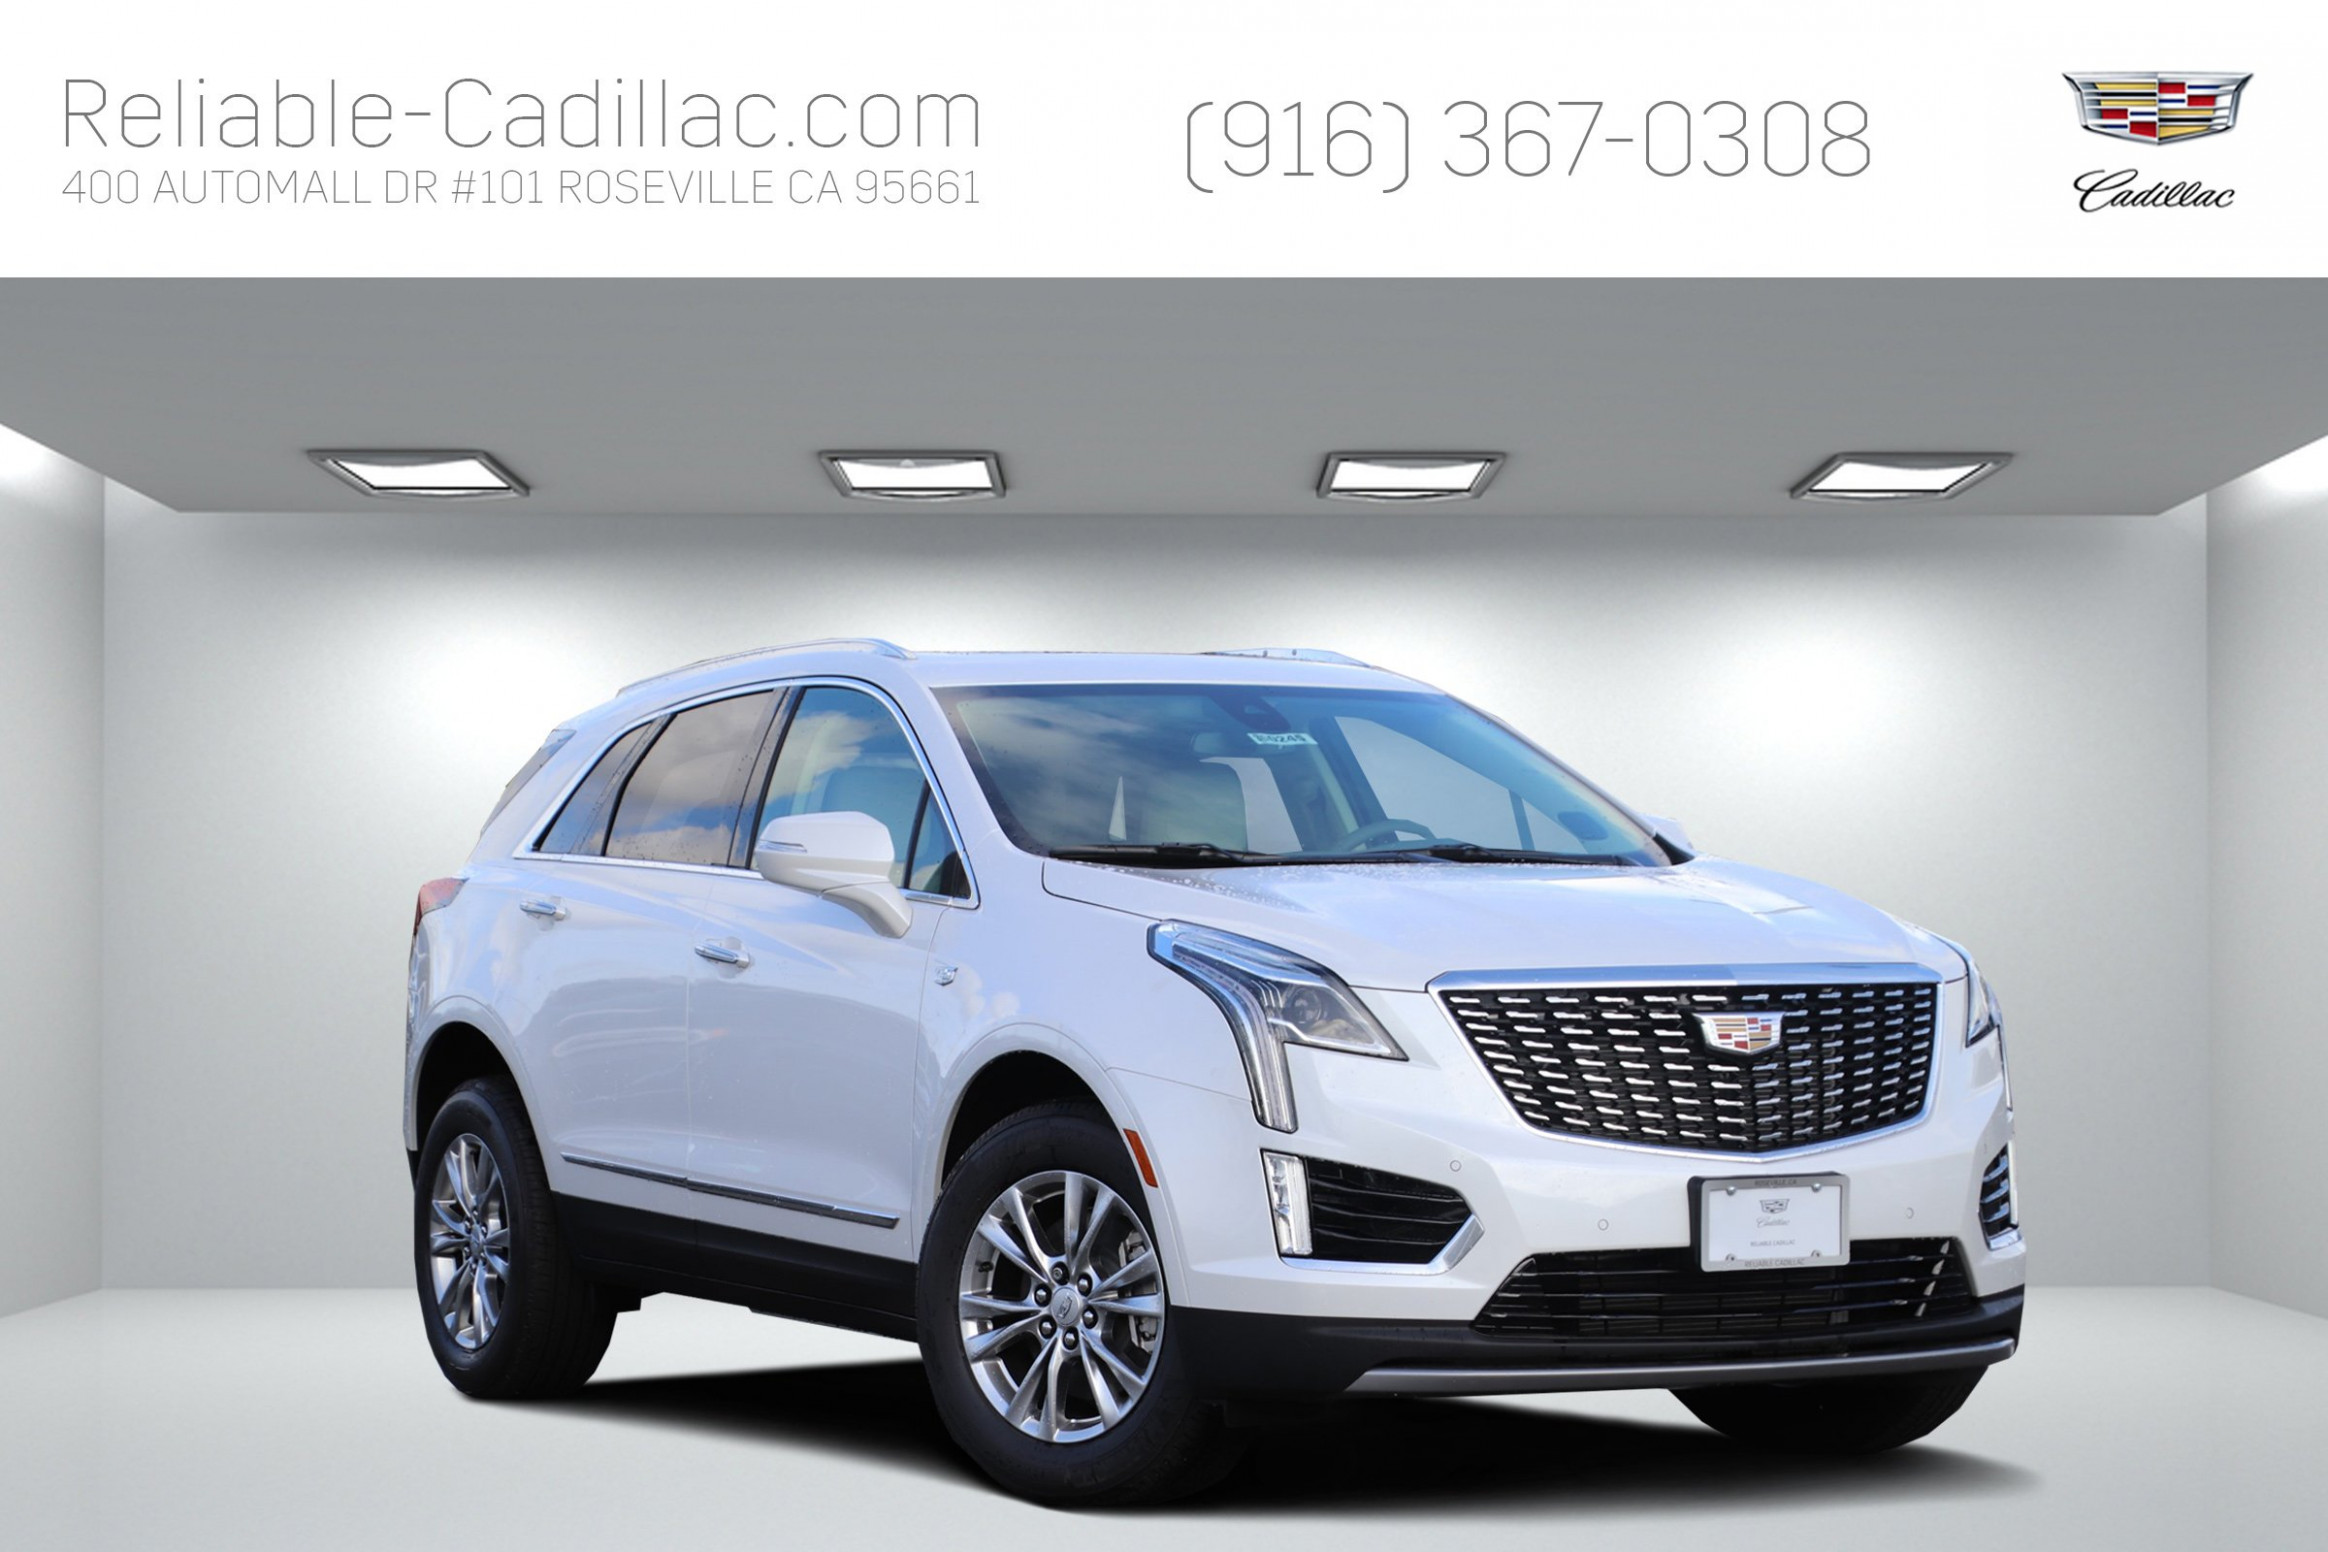 9 Cadillac XT9 for Sale in Napa, CA 94981 | Kelley Blue Book